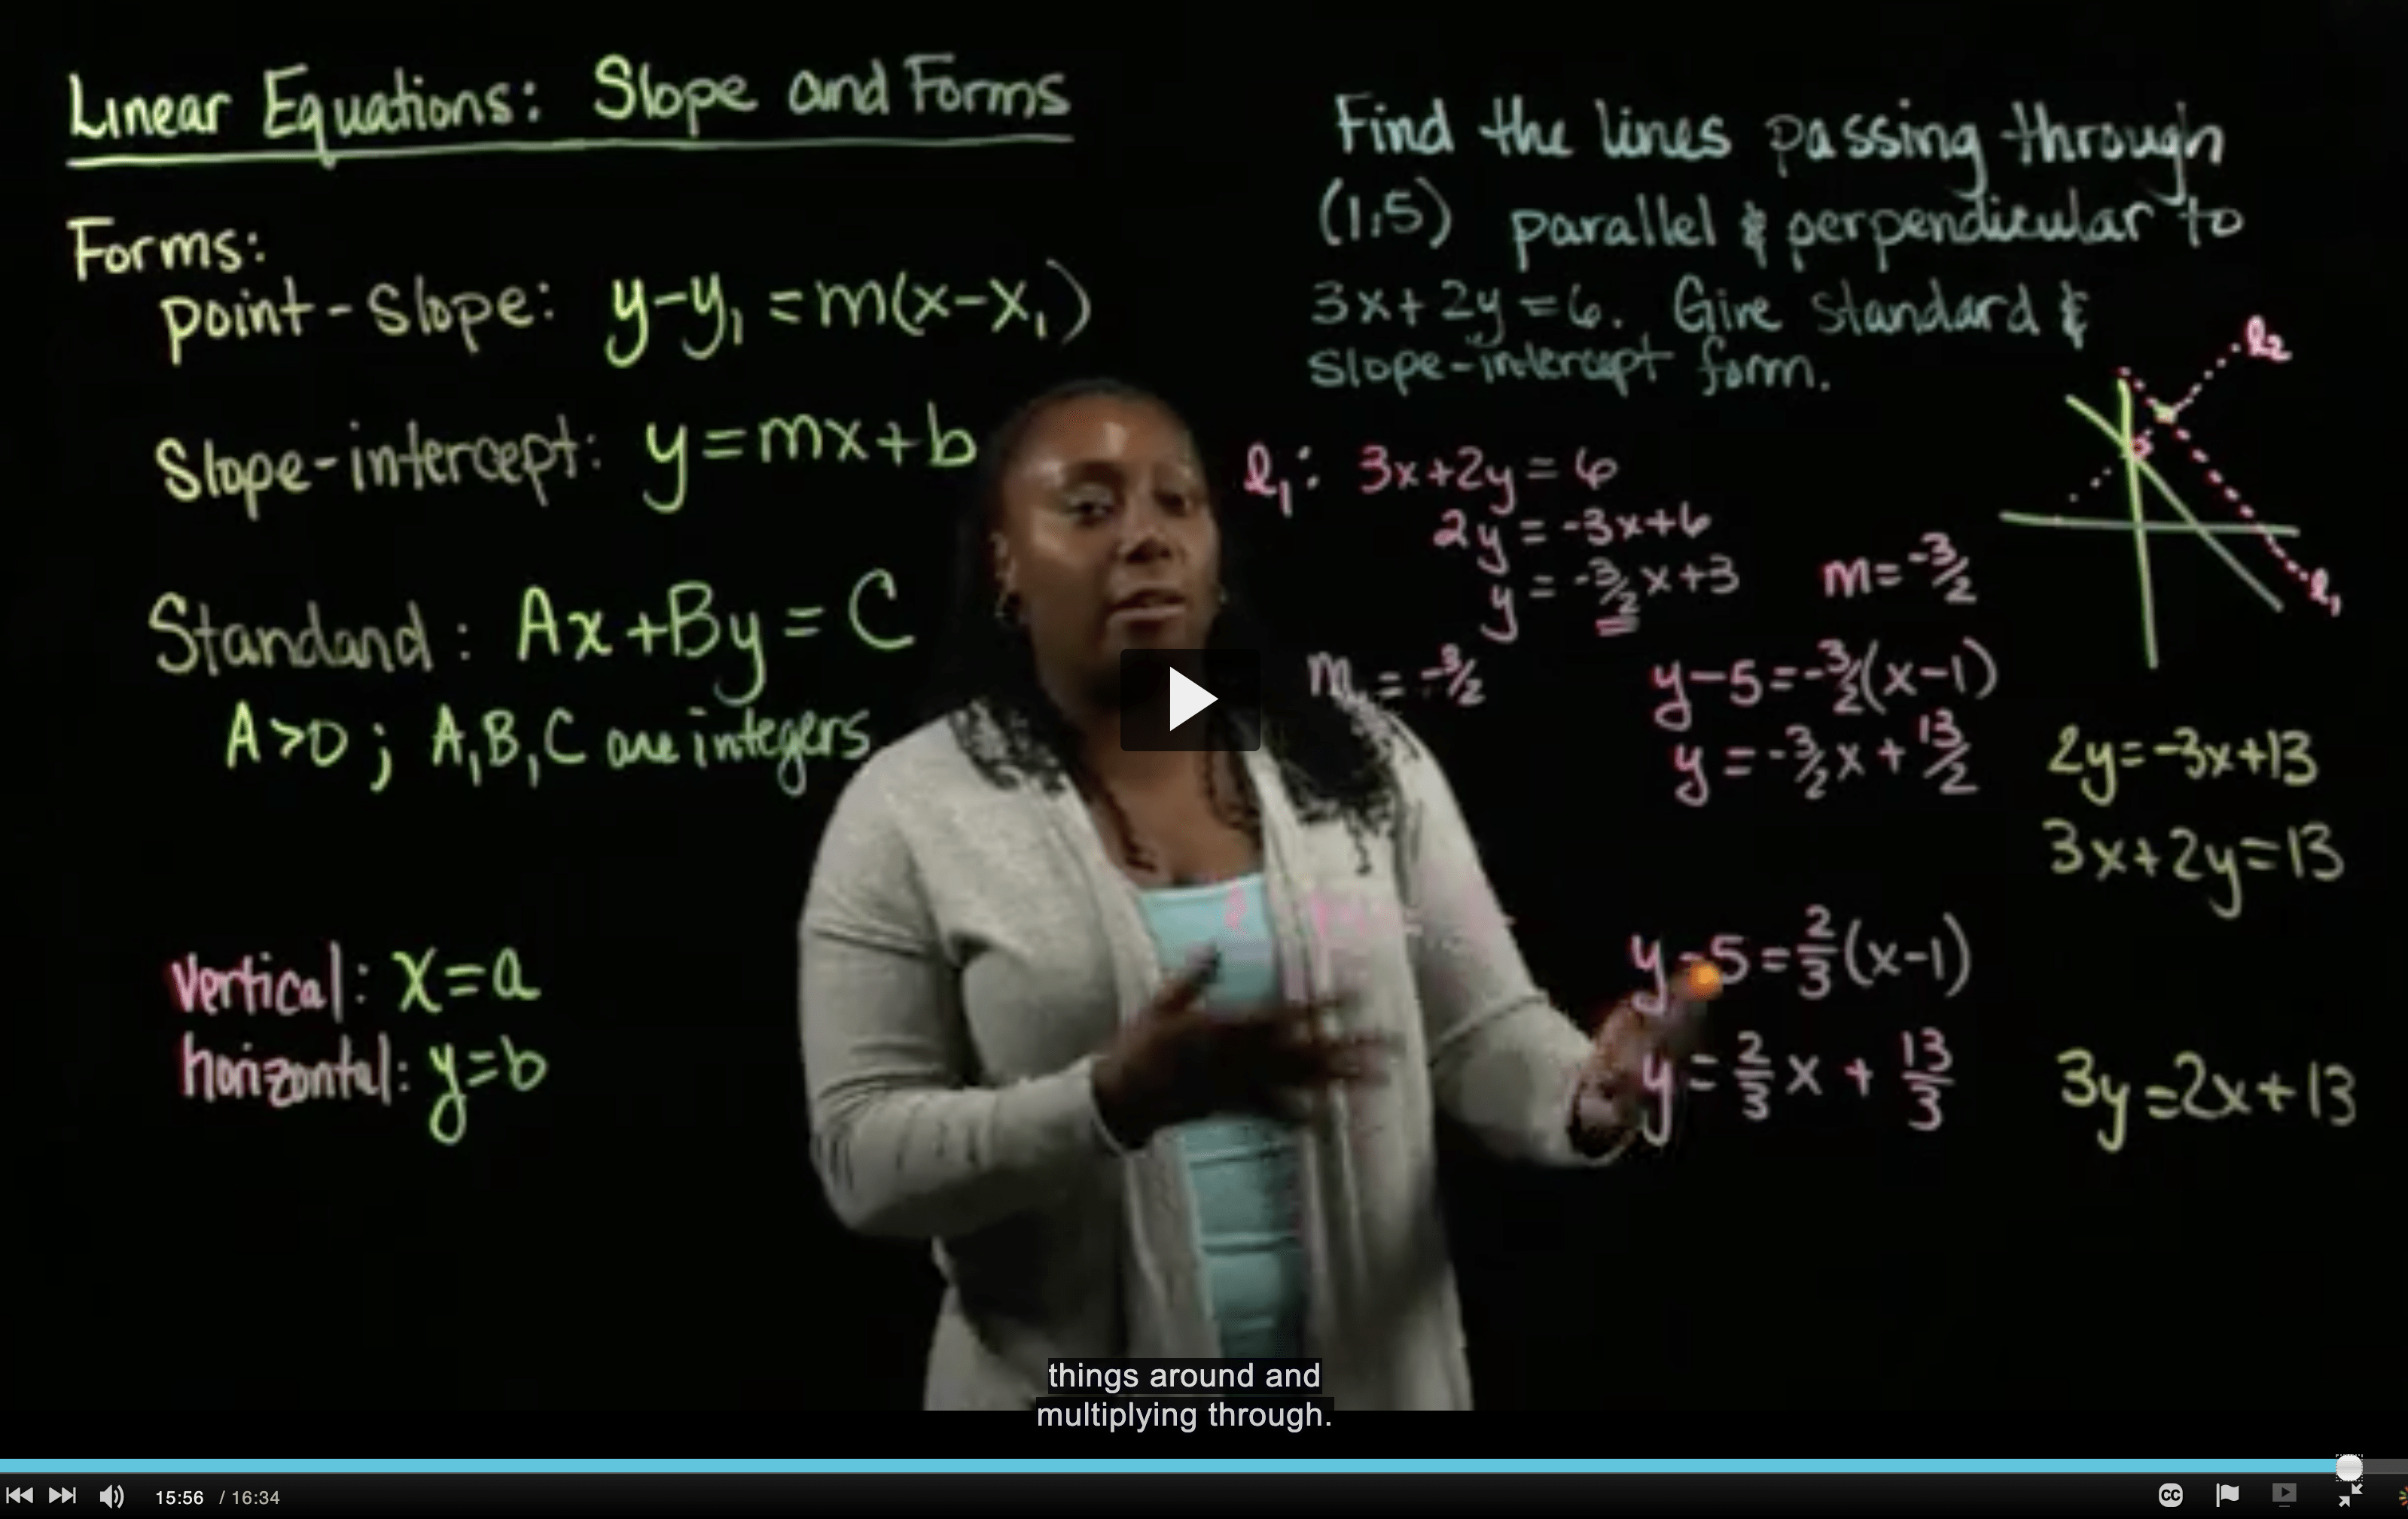 Latrice writing math on a transparent white board.